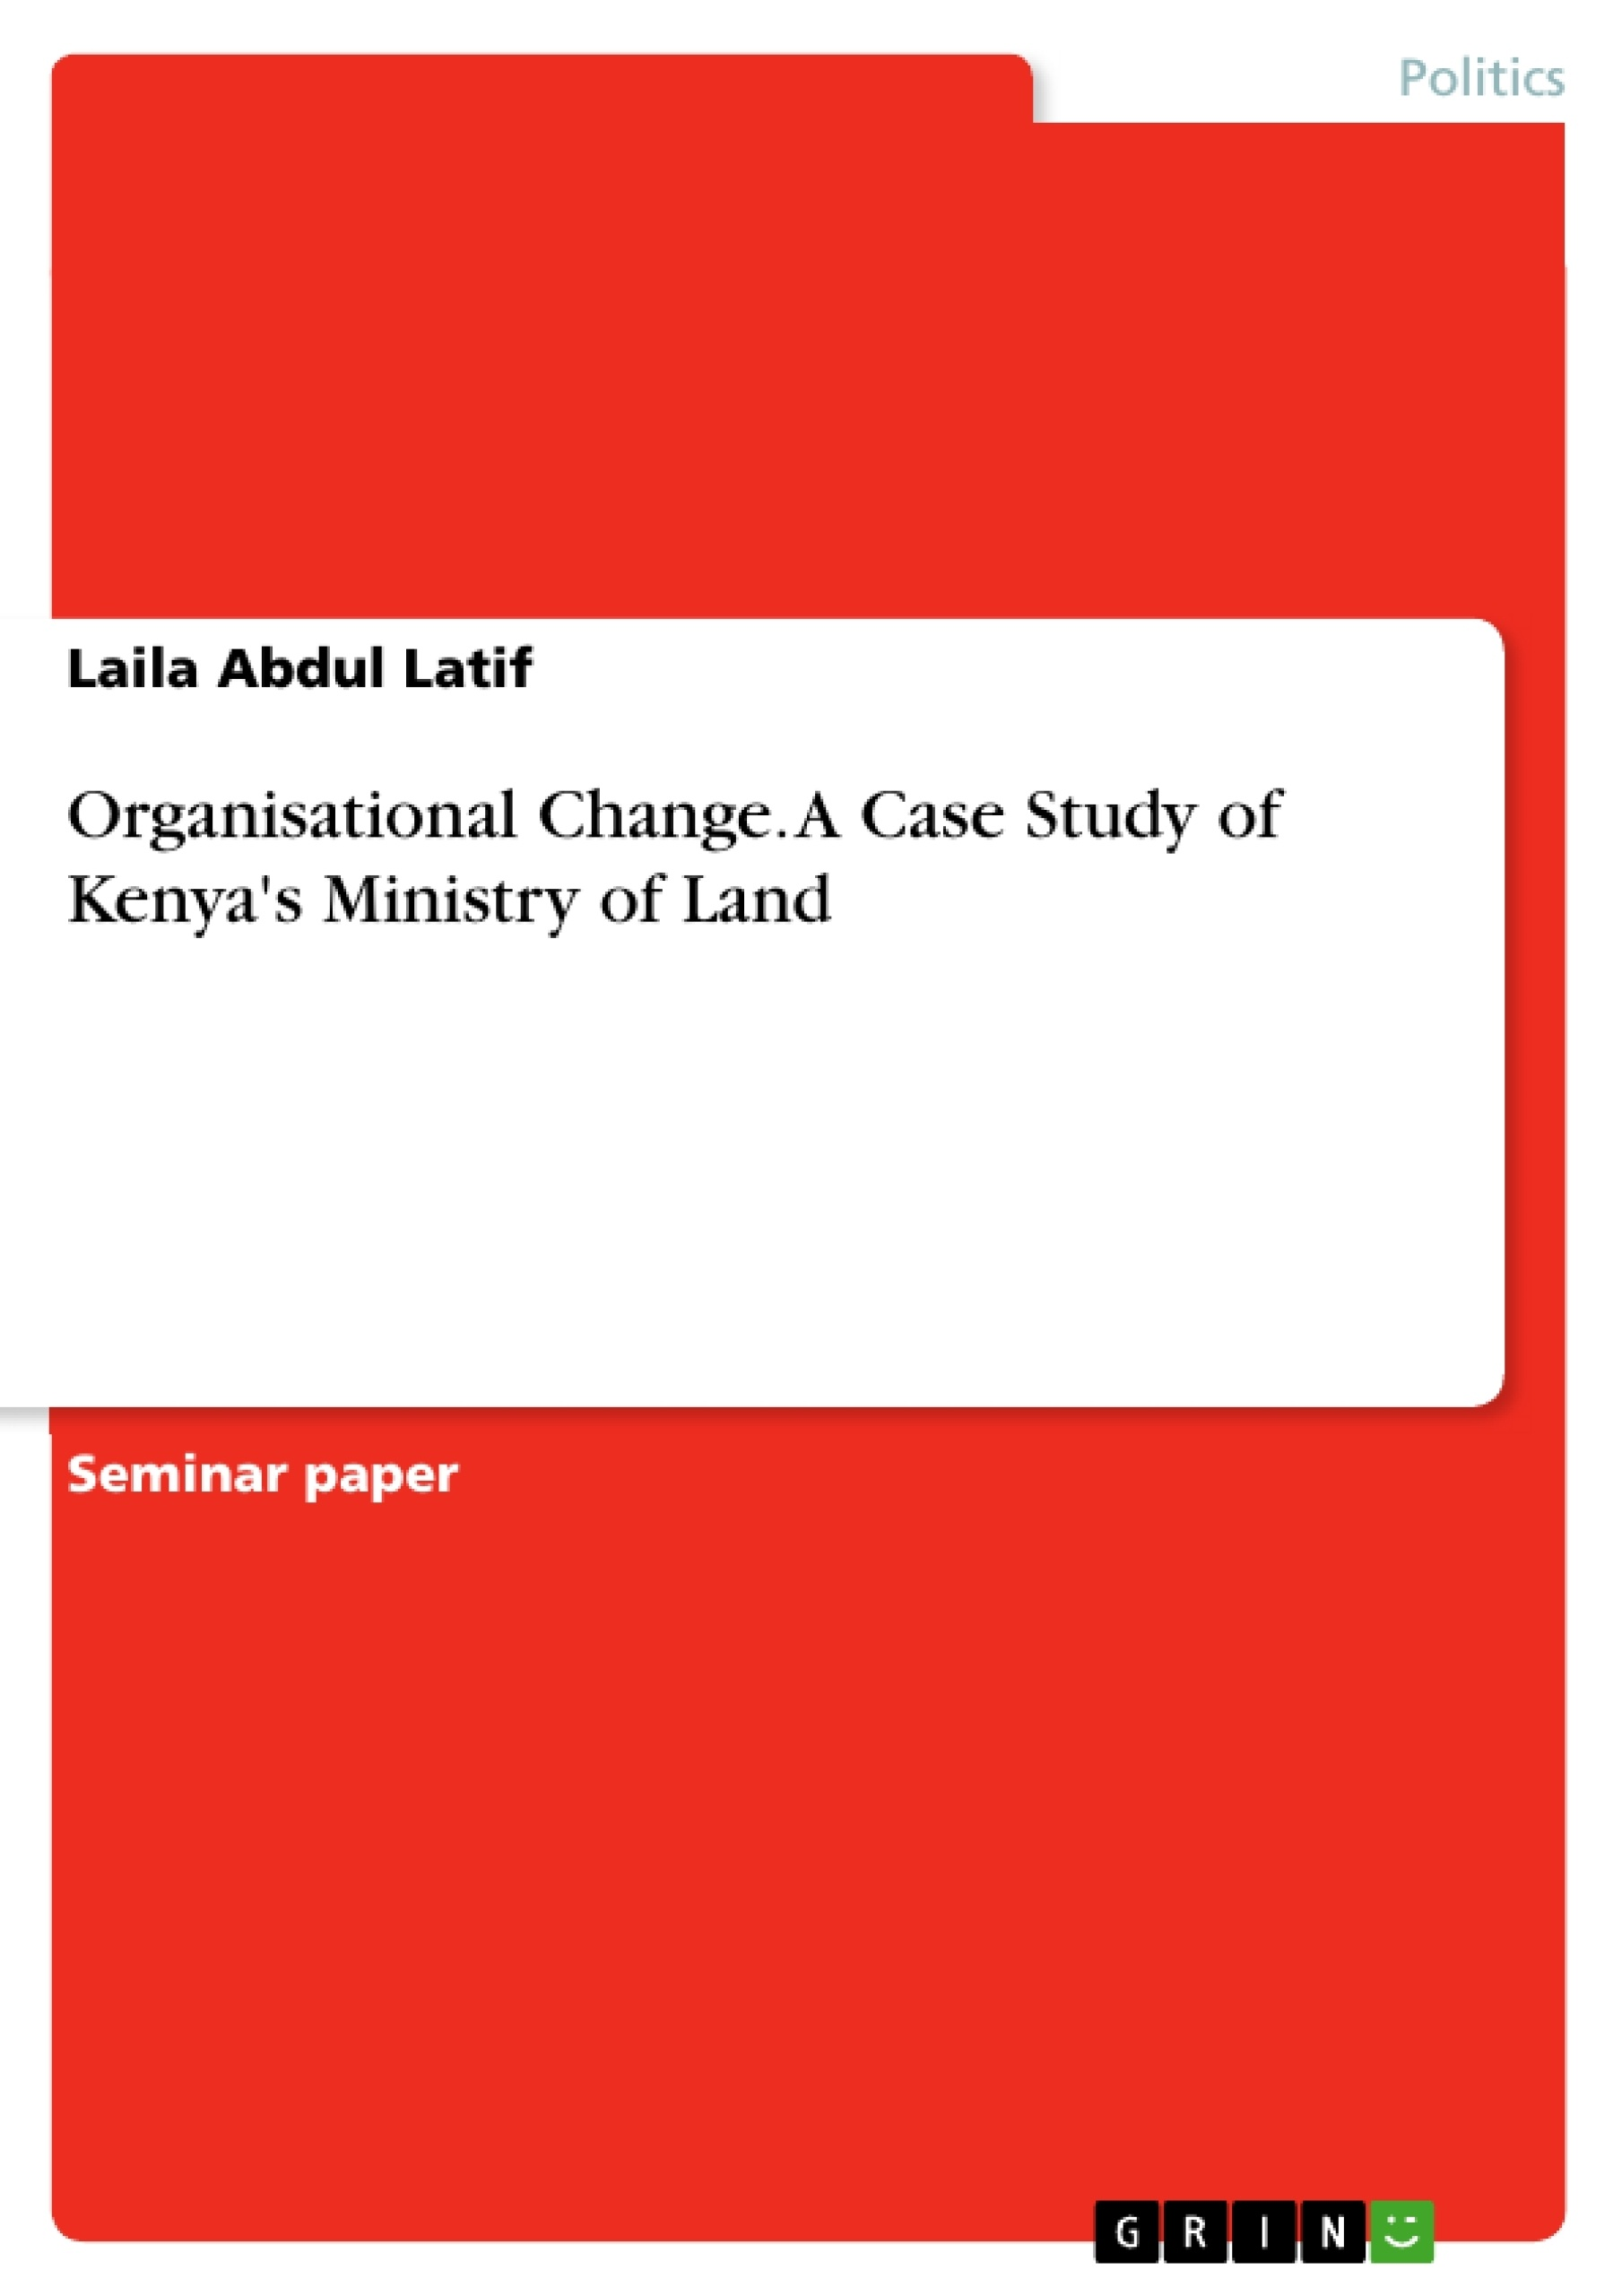 Title: Organisational Change. A Case Study of Kenya's Ministry of Land